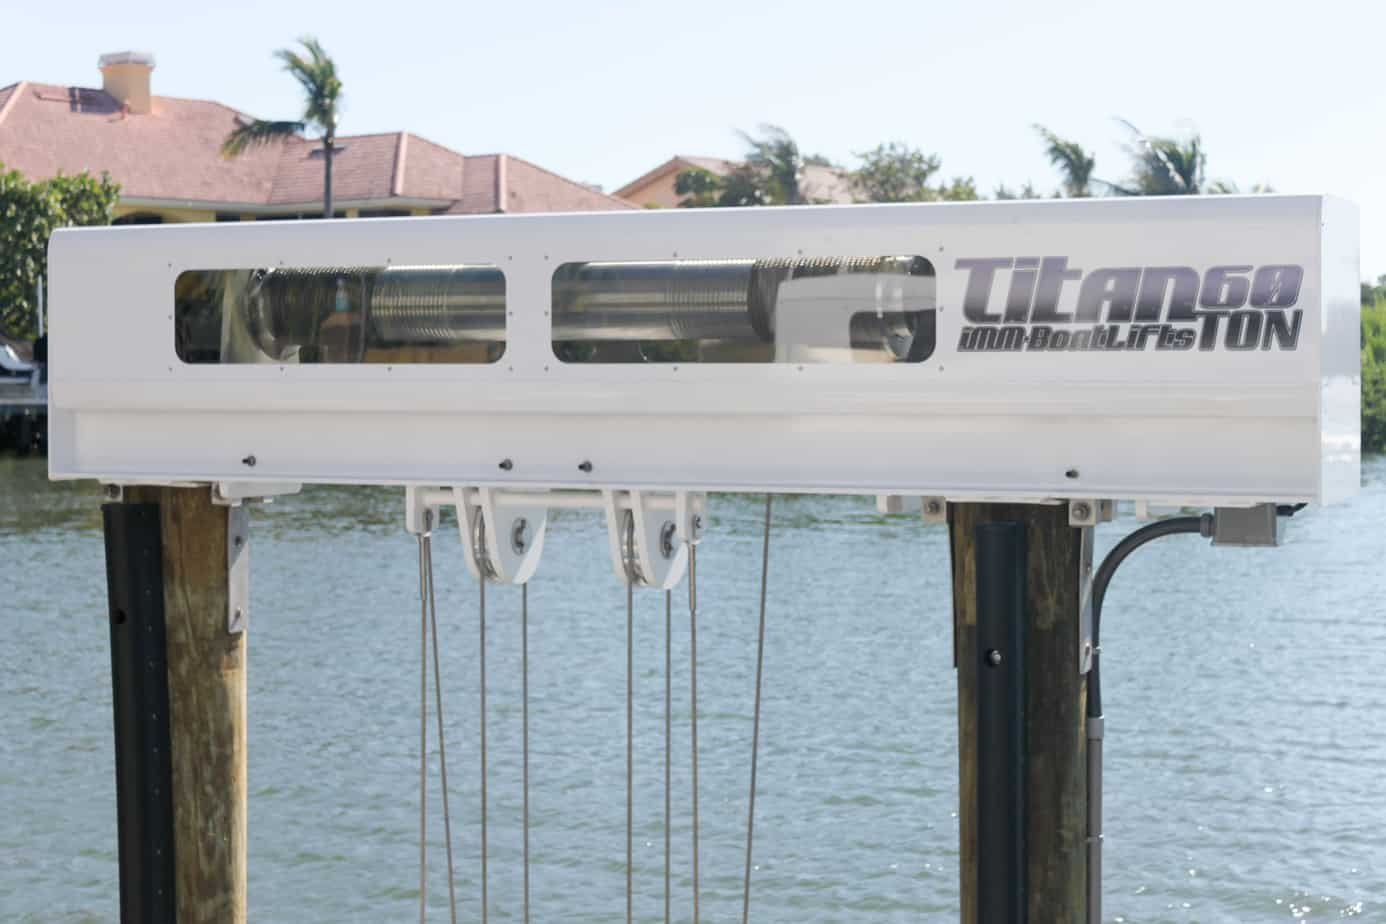 How to Choose a Marine Contractor - image patented-technology-Titan-Beam on https://www.iqboatlifts.com